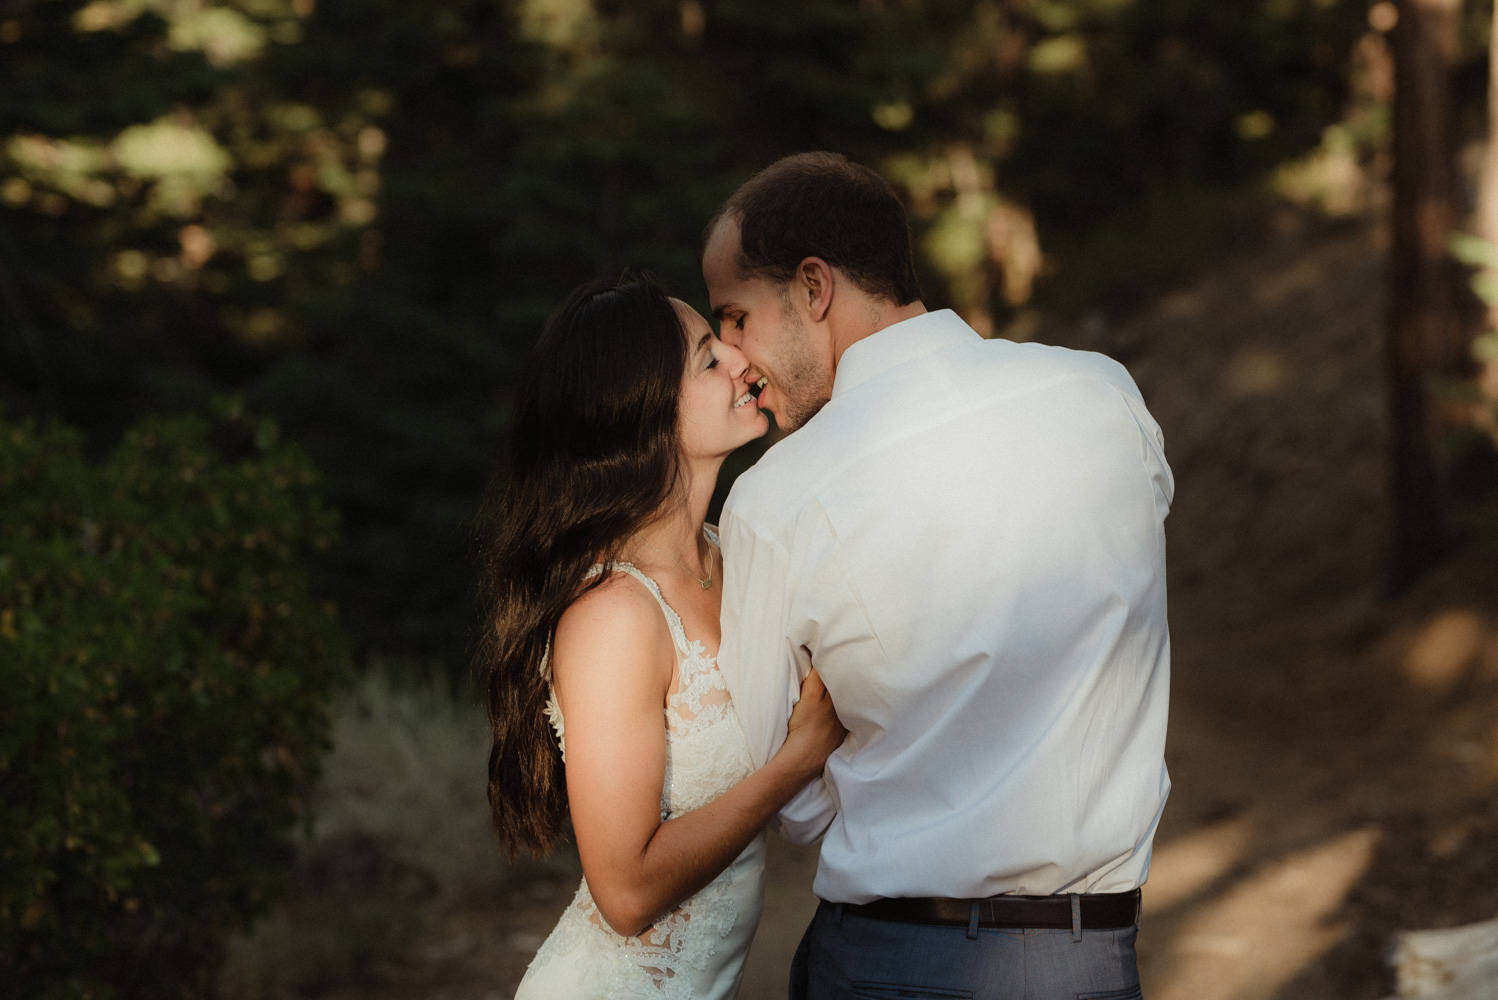 Lake Tahoe engagment session inspiration couple embracing each other in the forest photo